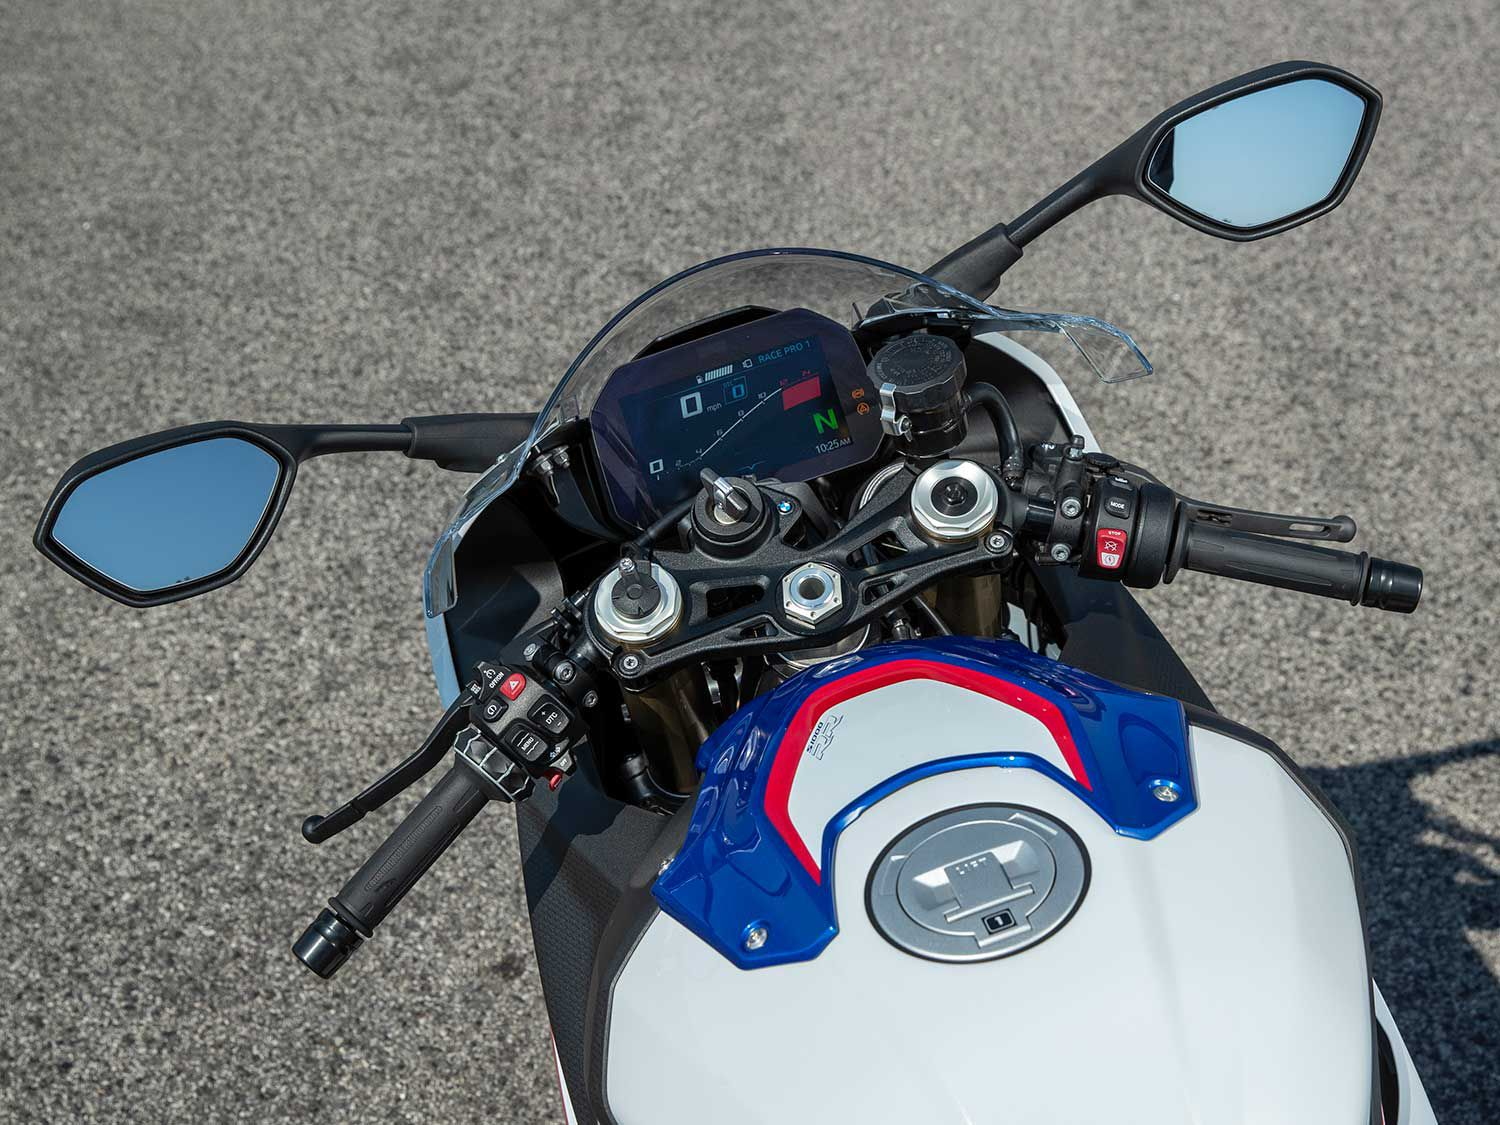 The S 1000 RR's cockpit is more civilized and accommodating for most riders.